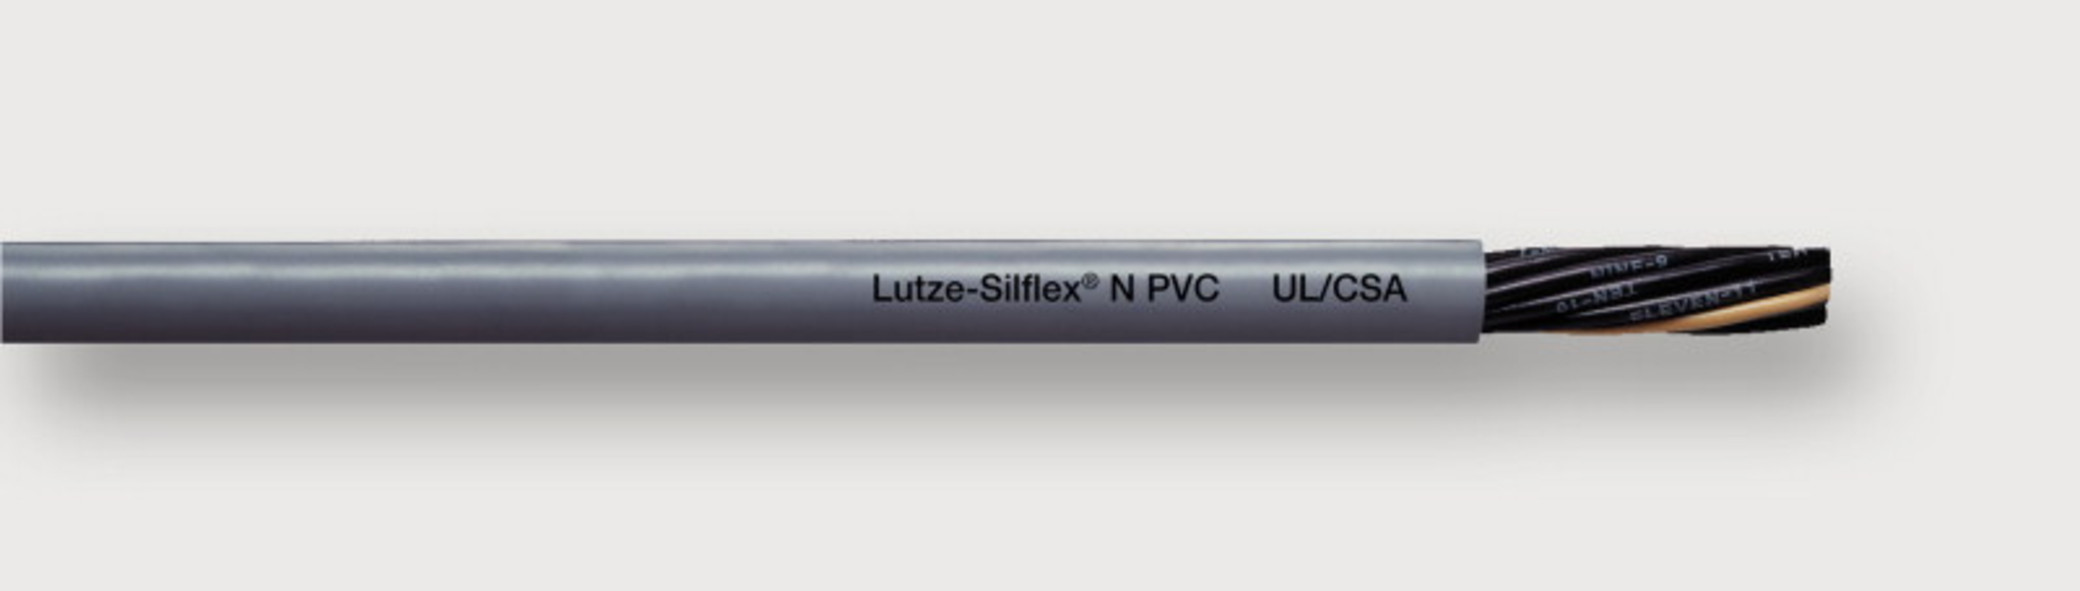 108392A - LÜTZE SILFLEX® N PVC with UL/CE Approvals